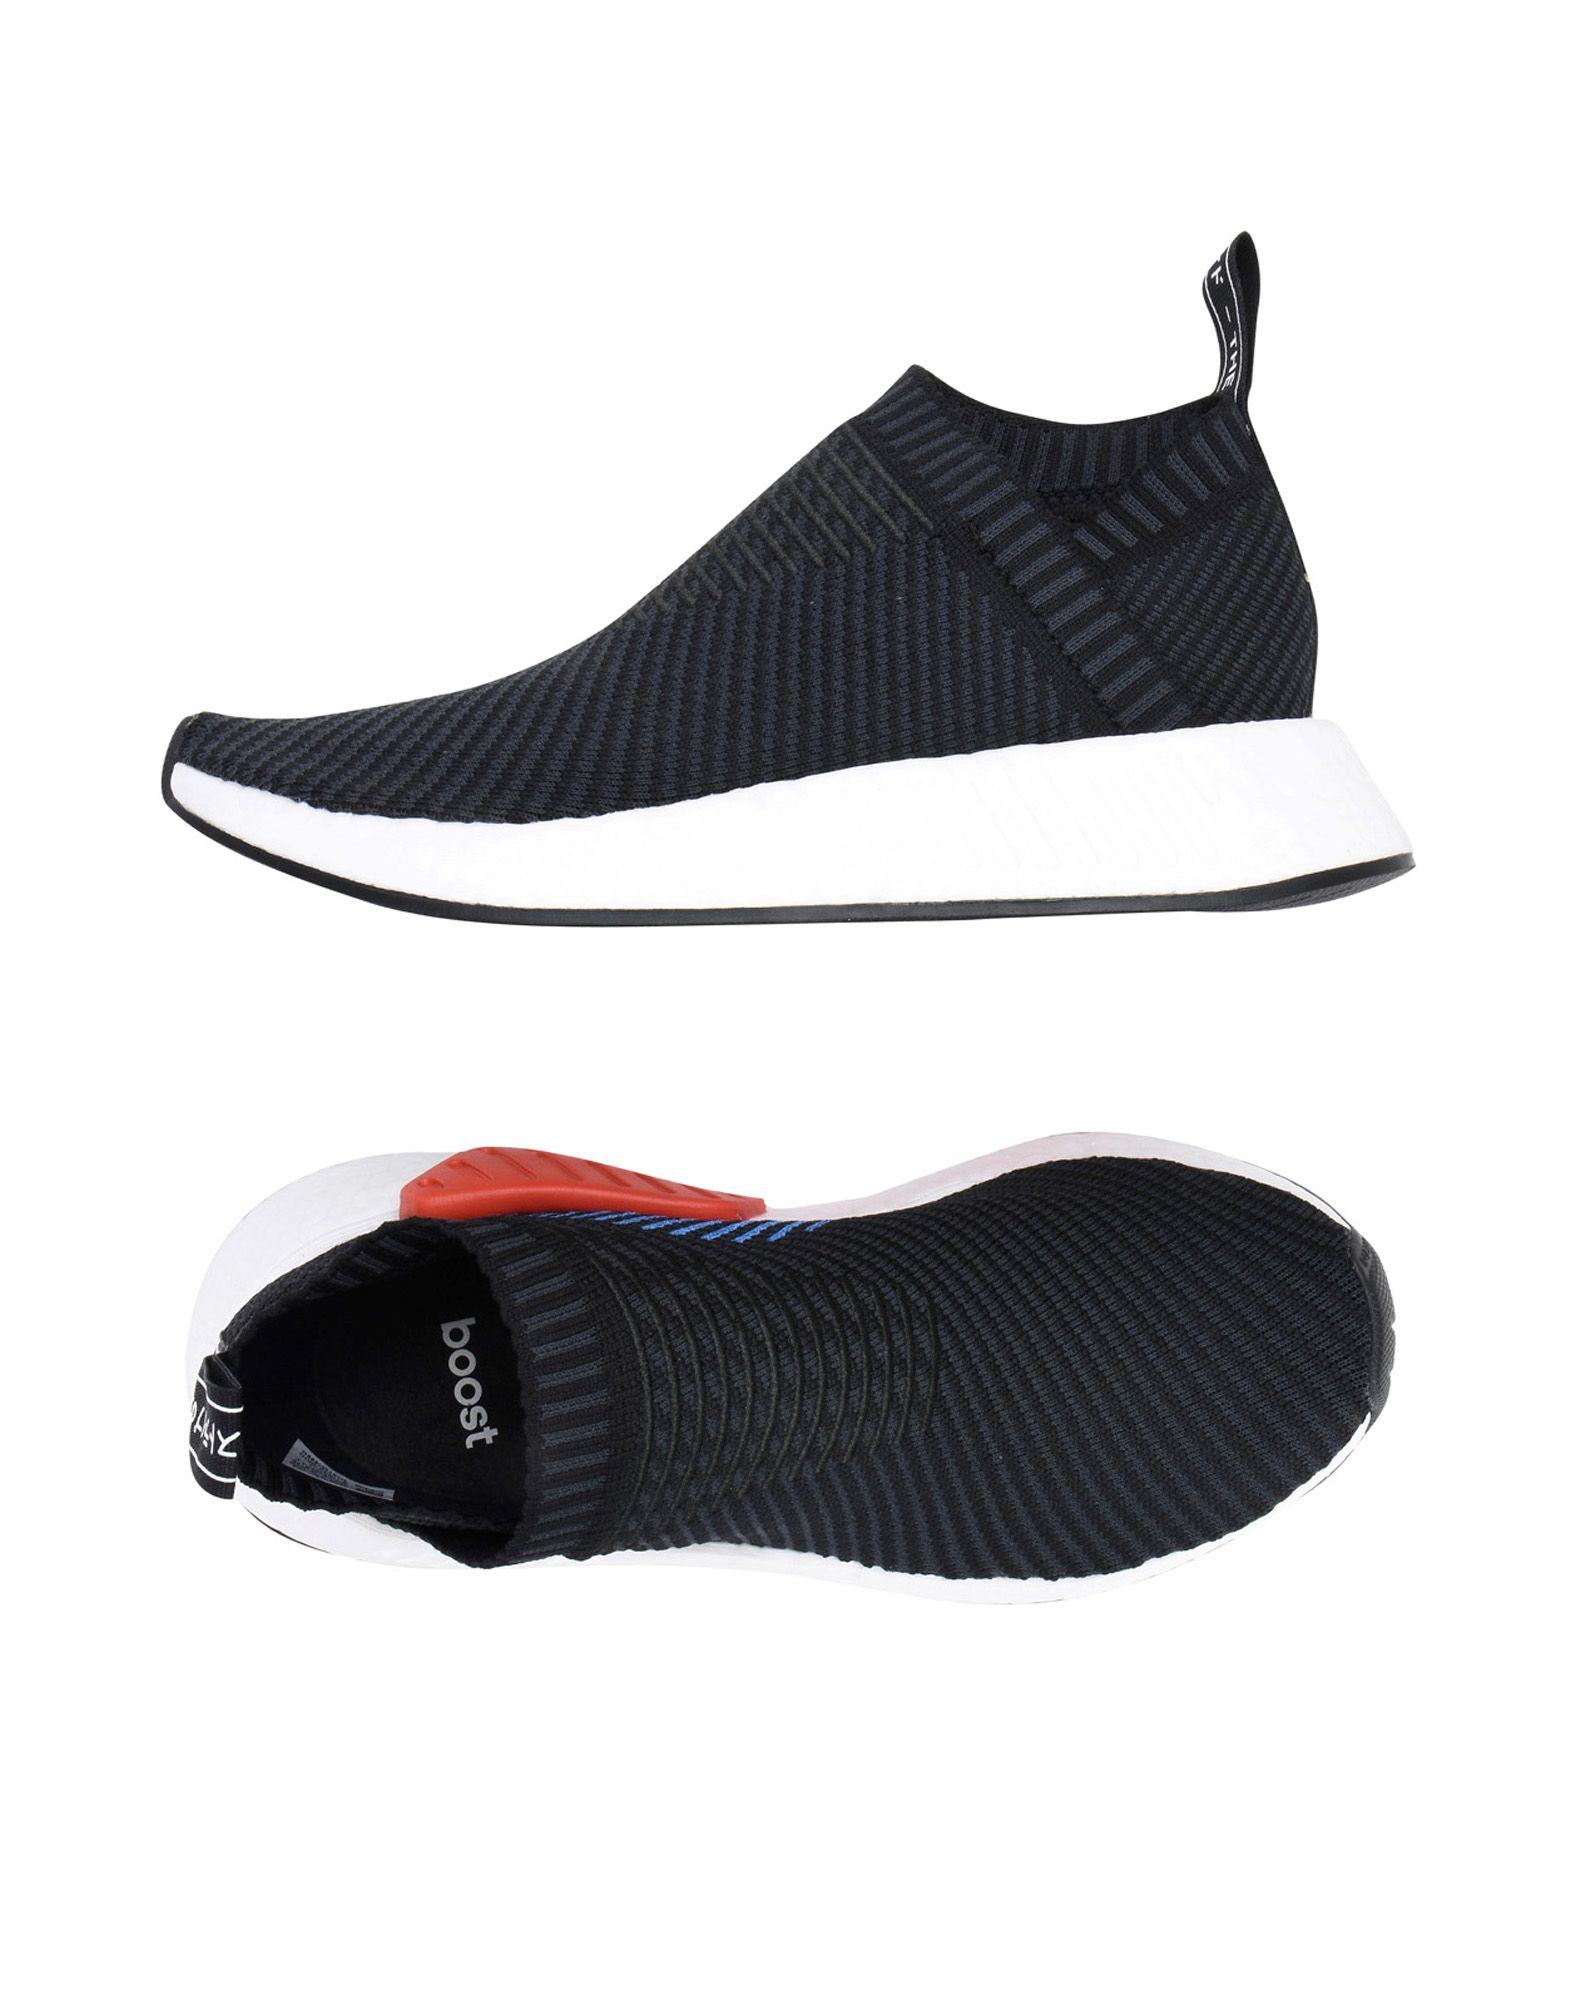 Sneakers Adidas Originals Nmd_Cs2 Pk - Femme - Sneakers Adidas Originals sur